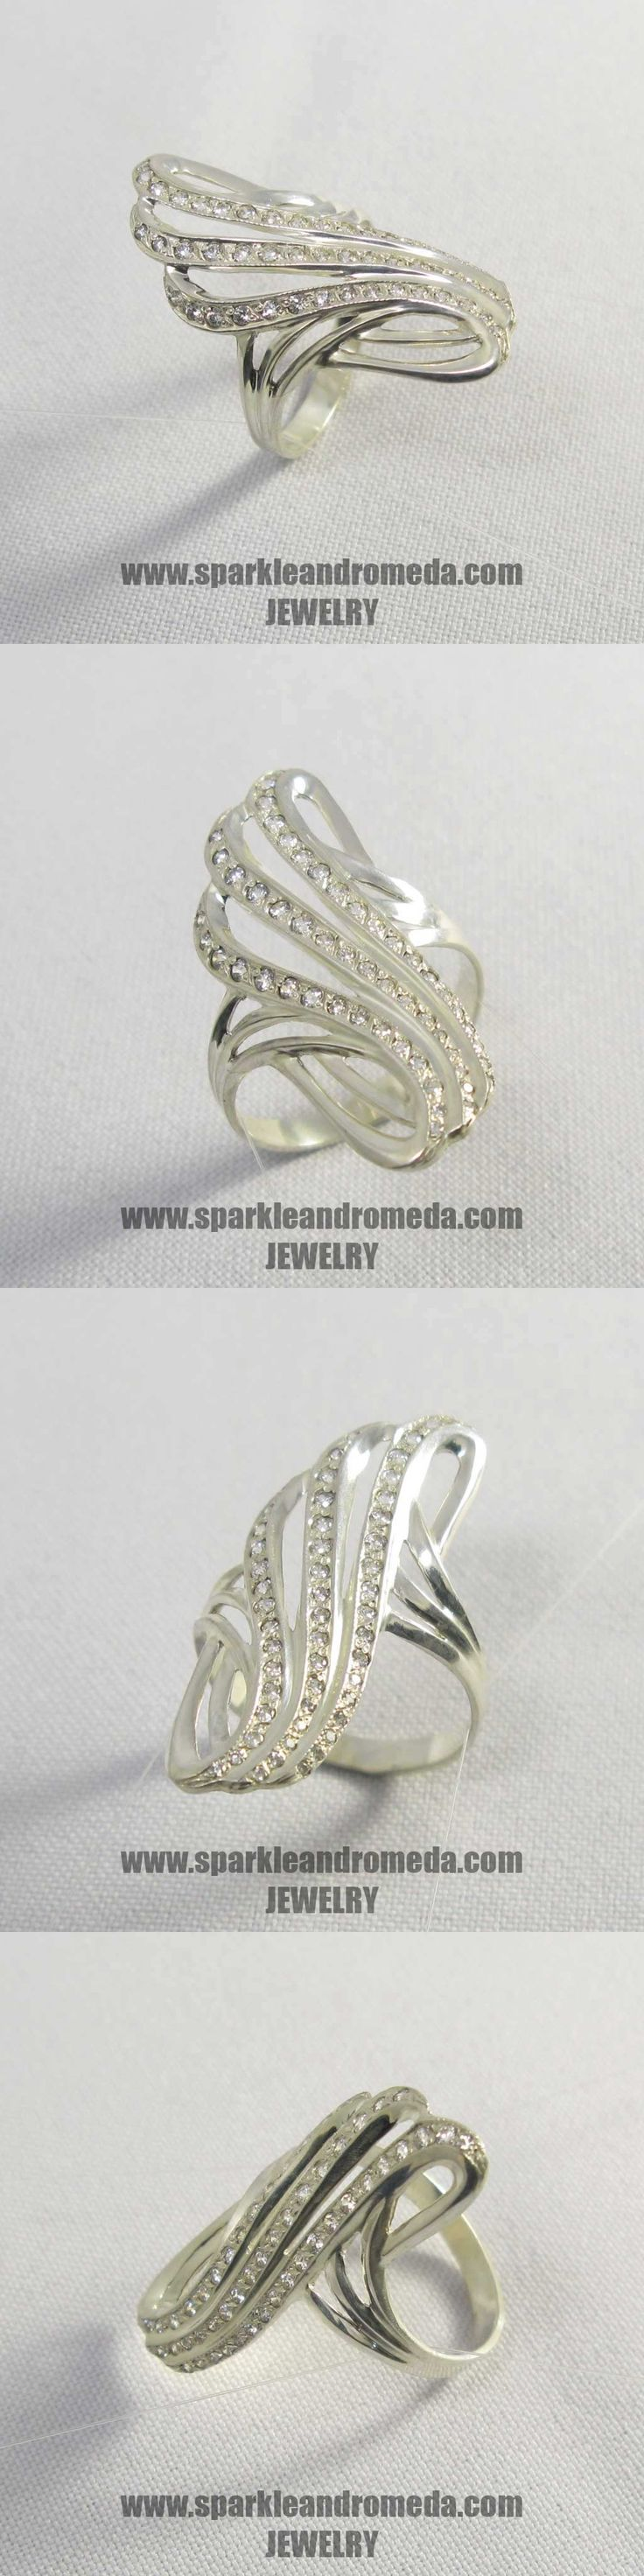 Sterling 925 silver ring with 18 round 1,5 mm 20 round 1,25 mm and 13 round 1 mm white color cubic zirconia gemstones.